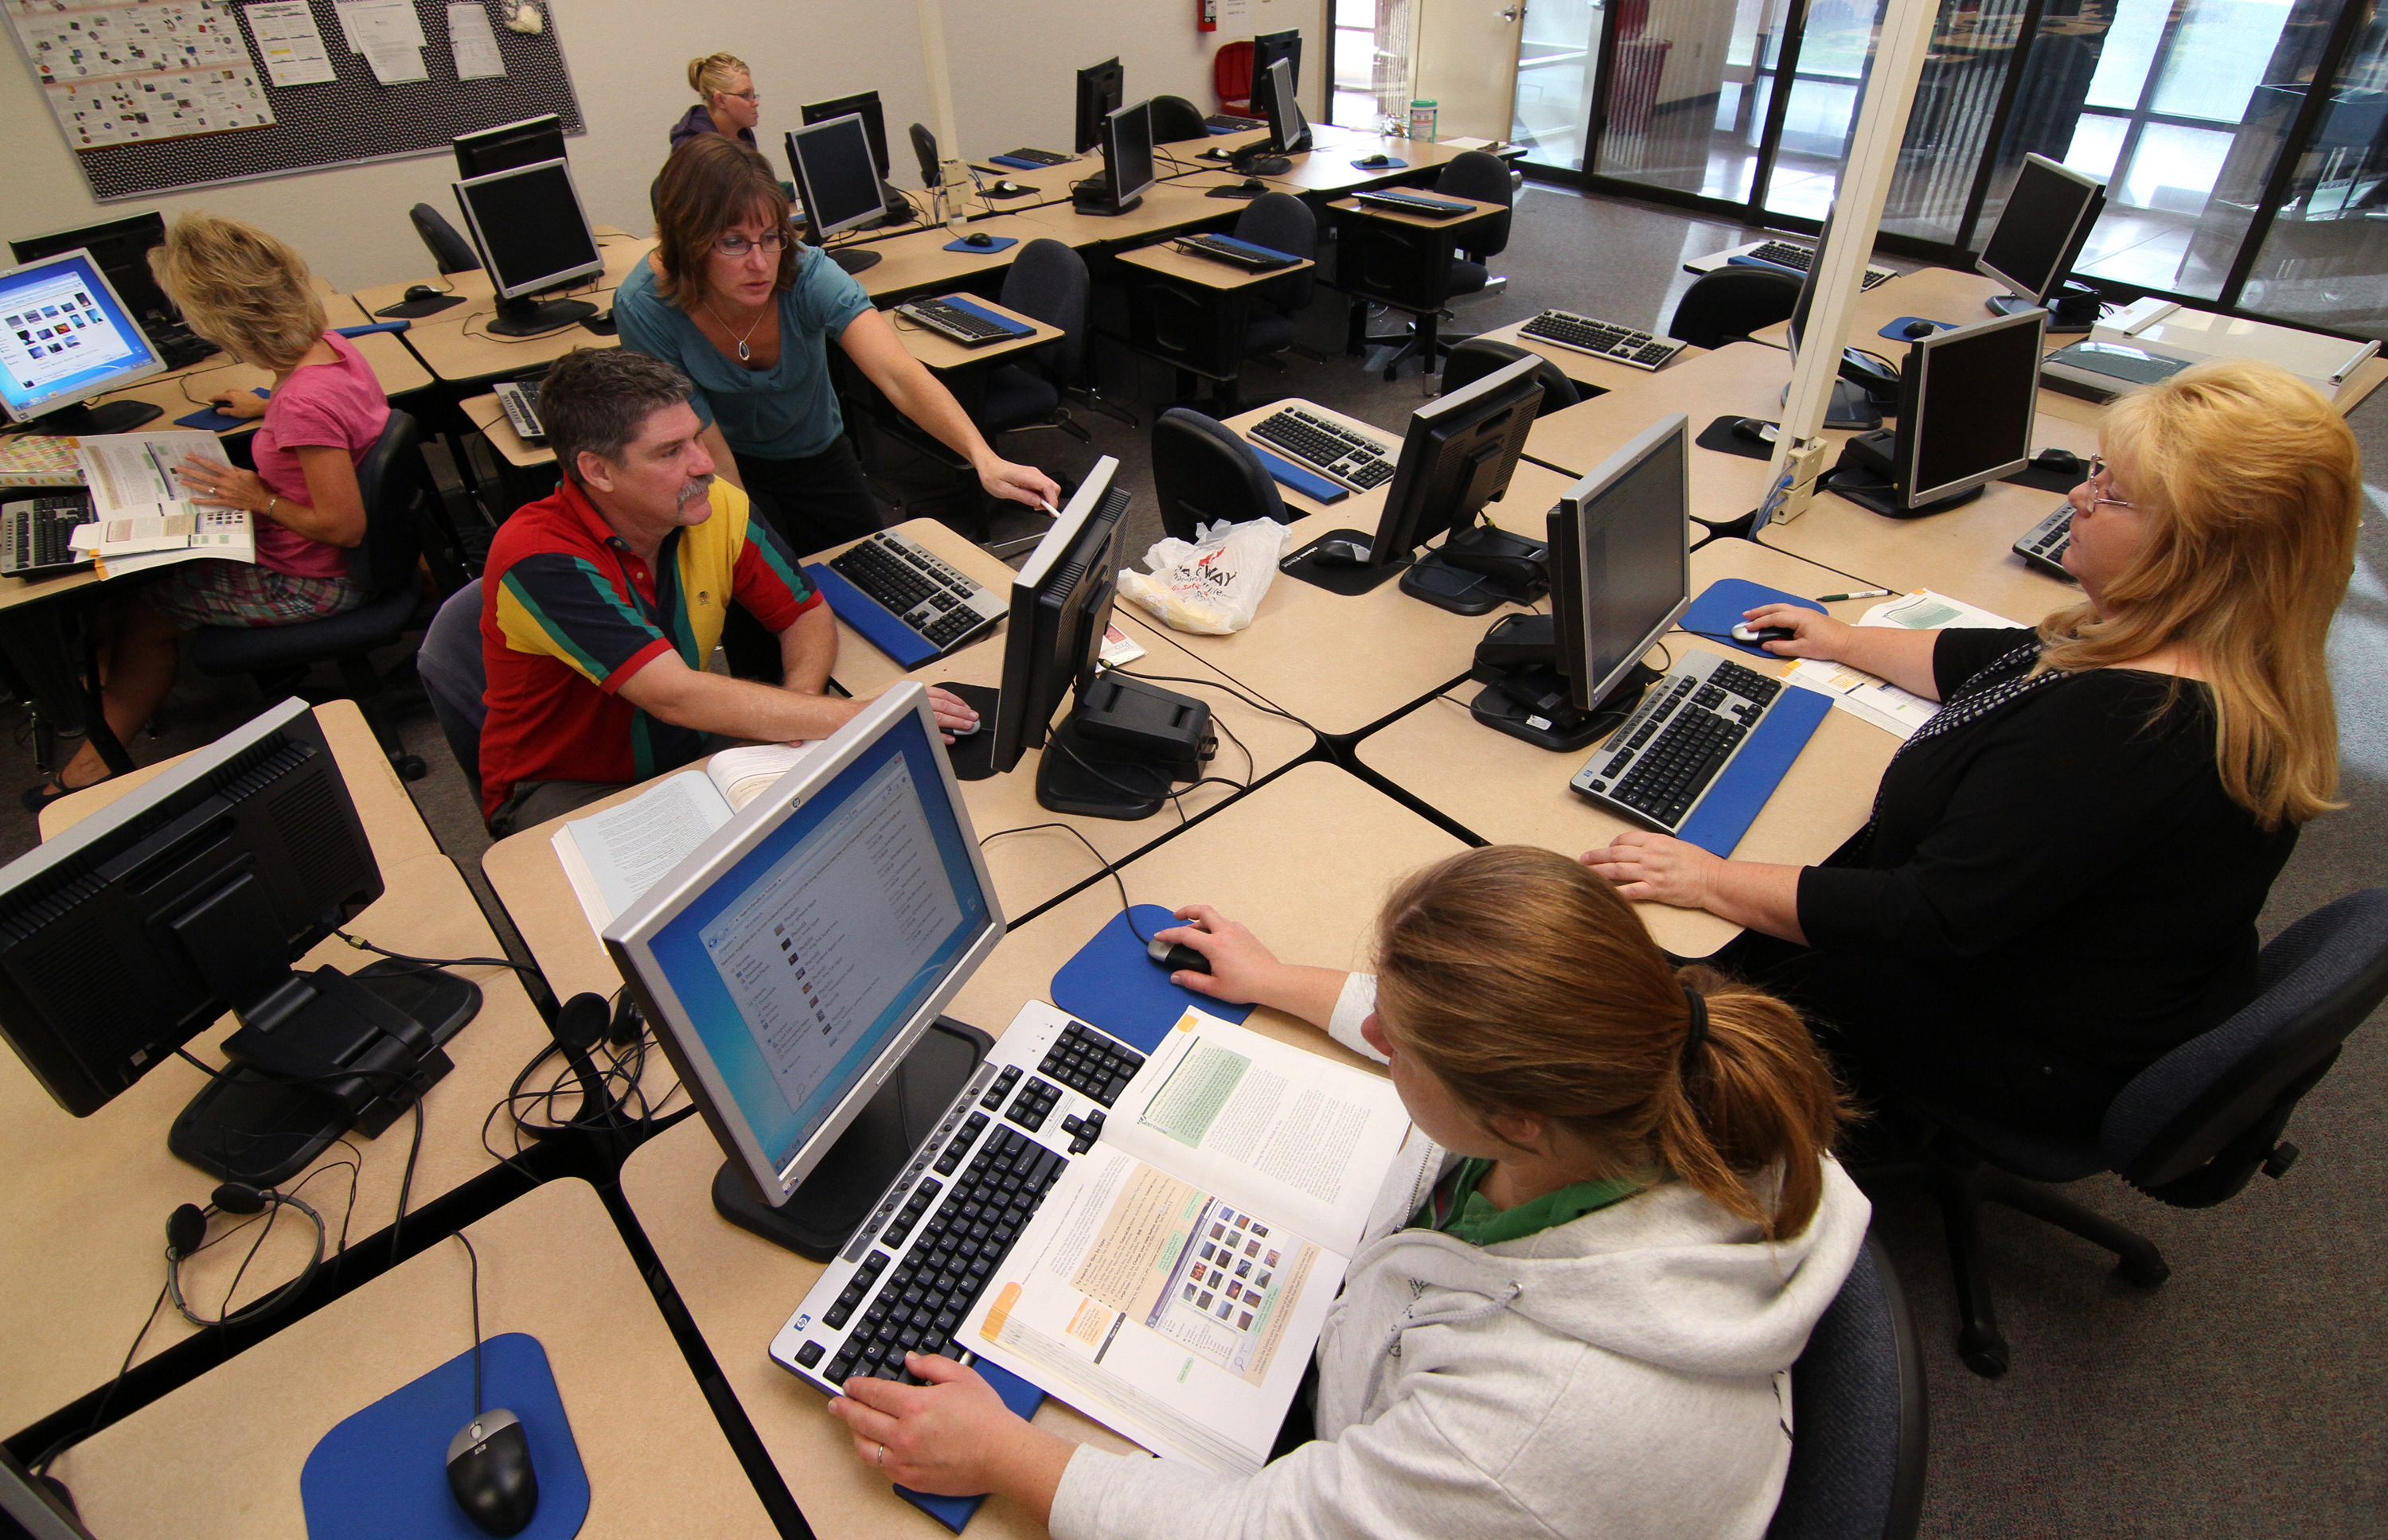 An instructor works with students in a computer class at WNC